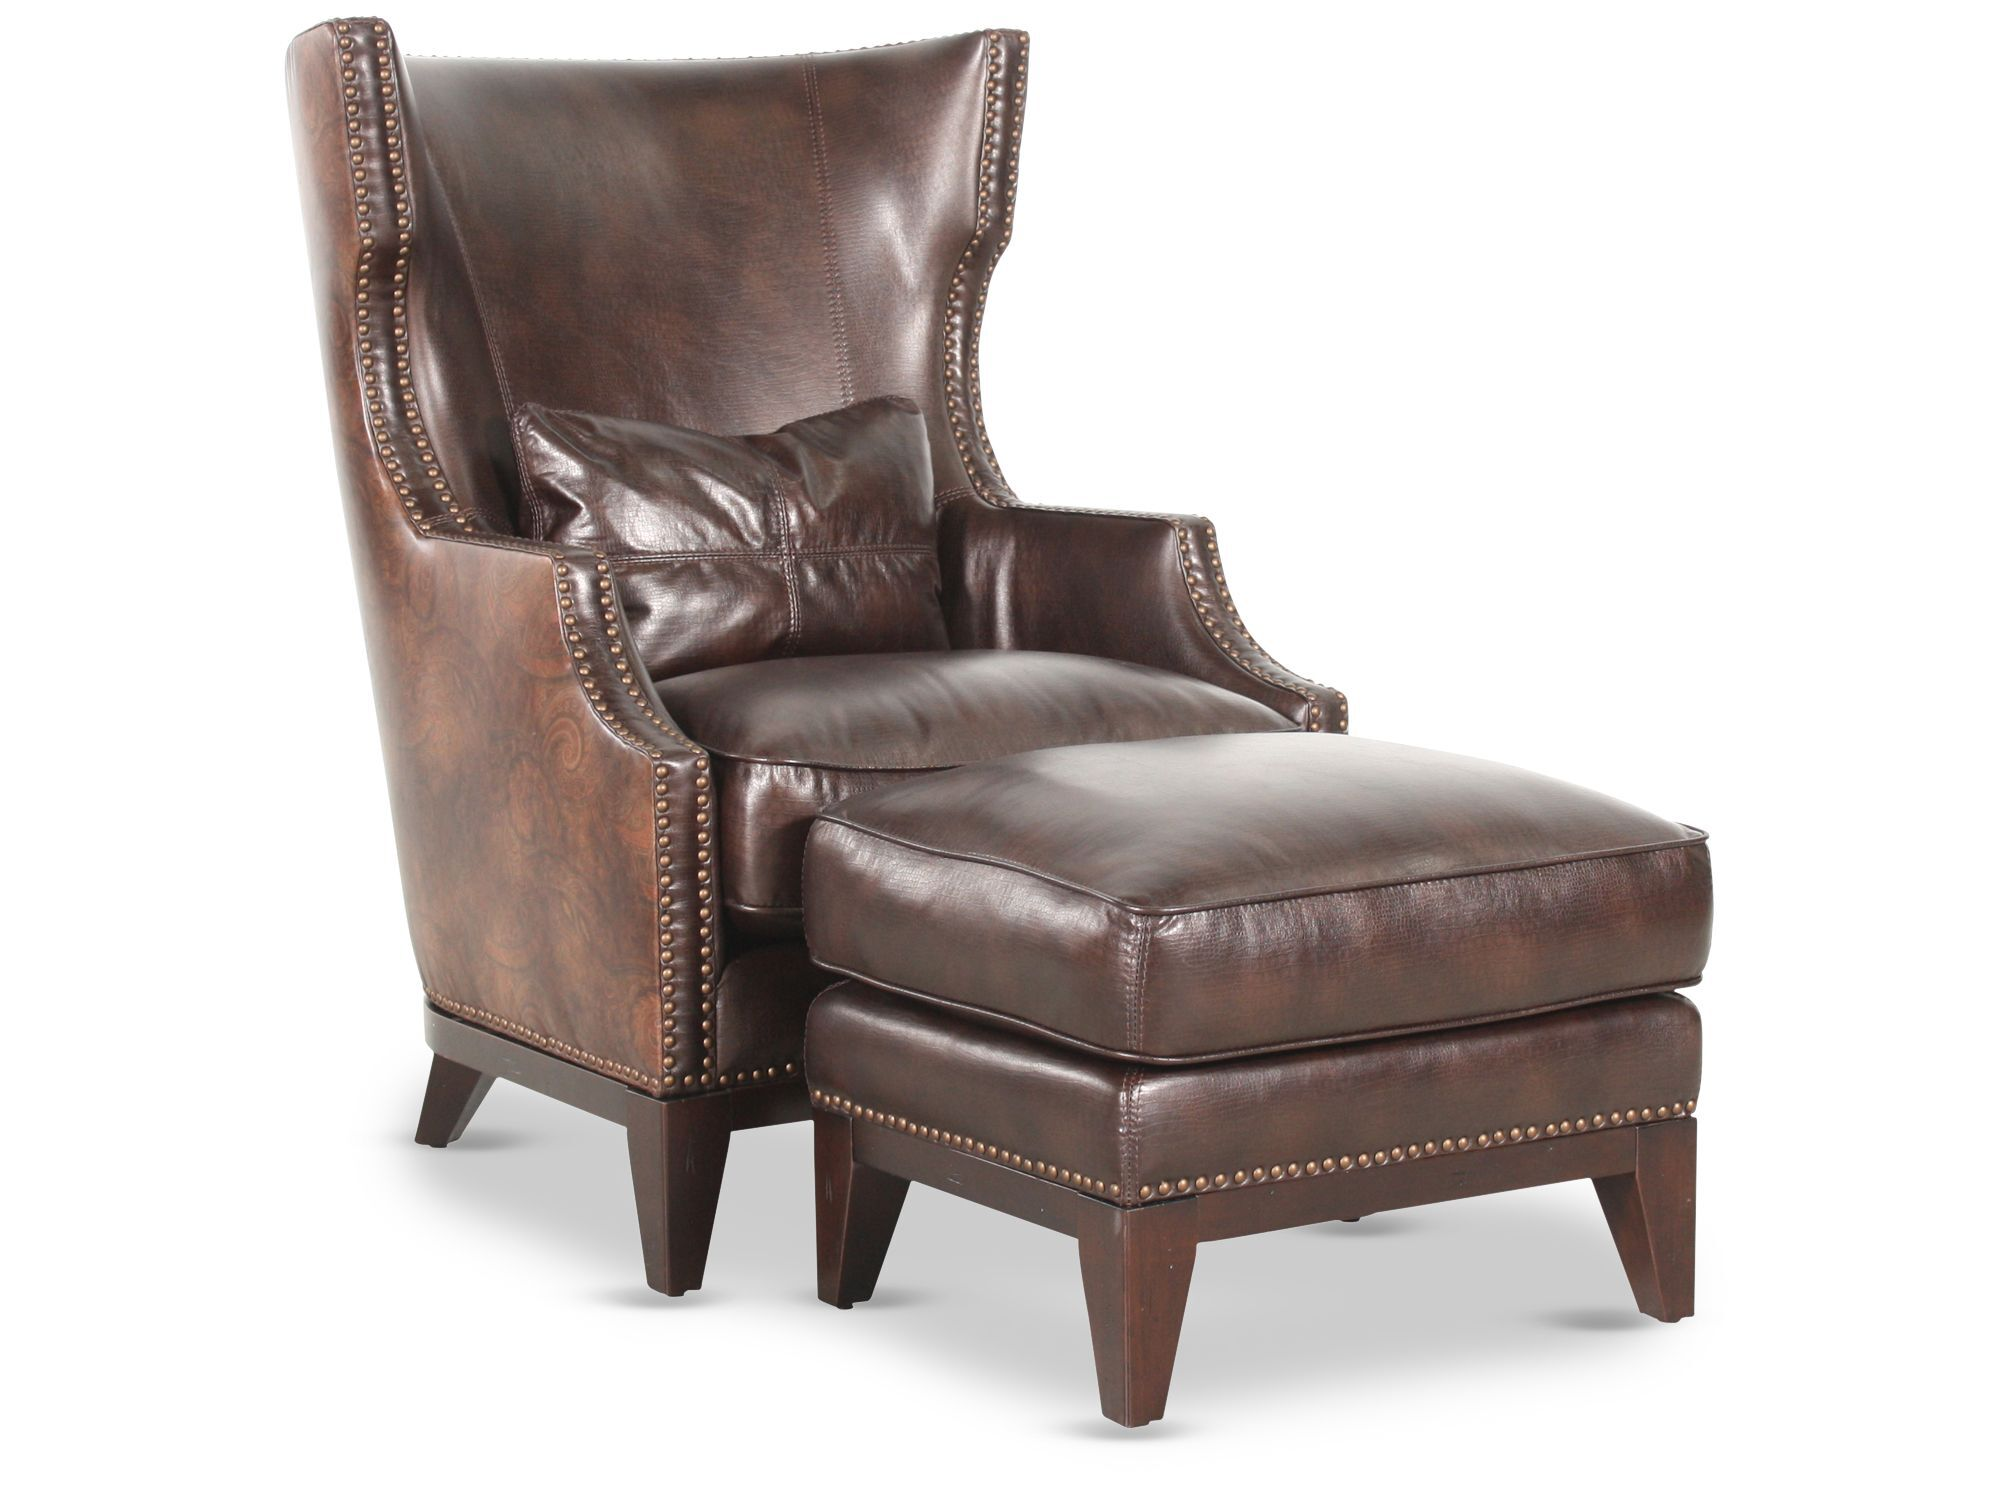 home decor accent chairs folding table and target nailhead accented leather 34 quot chair with ottoman in brown